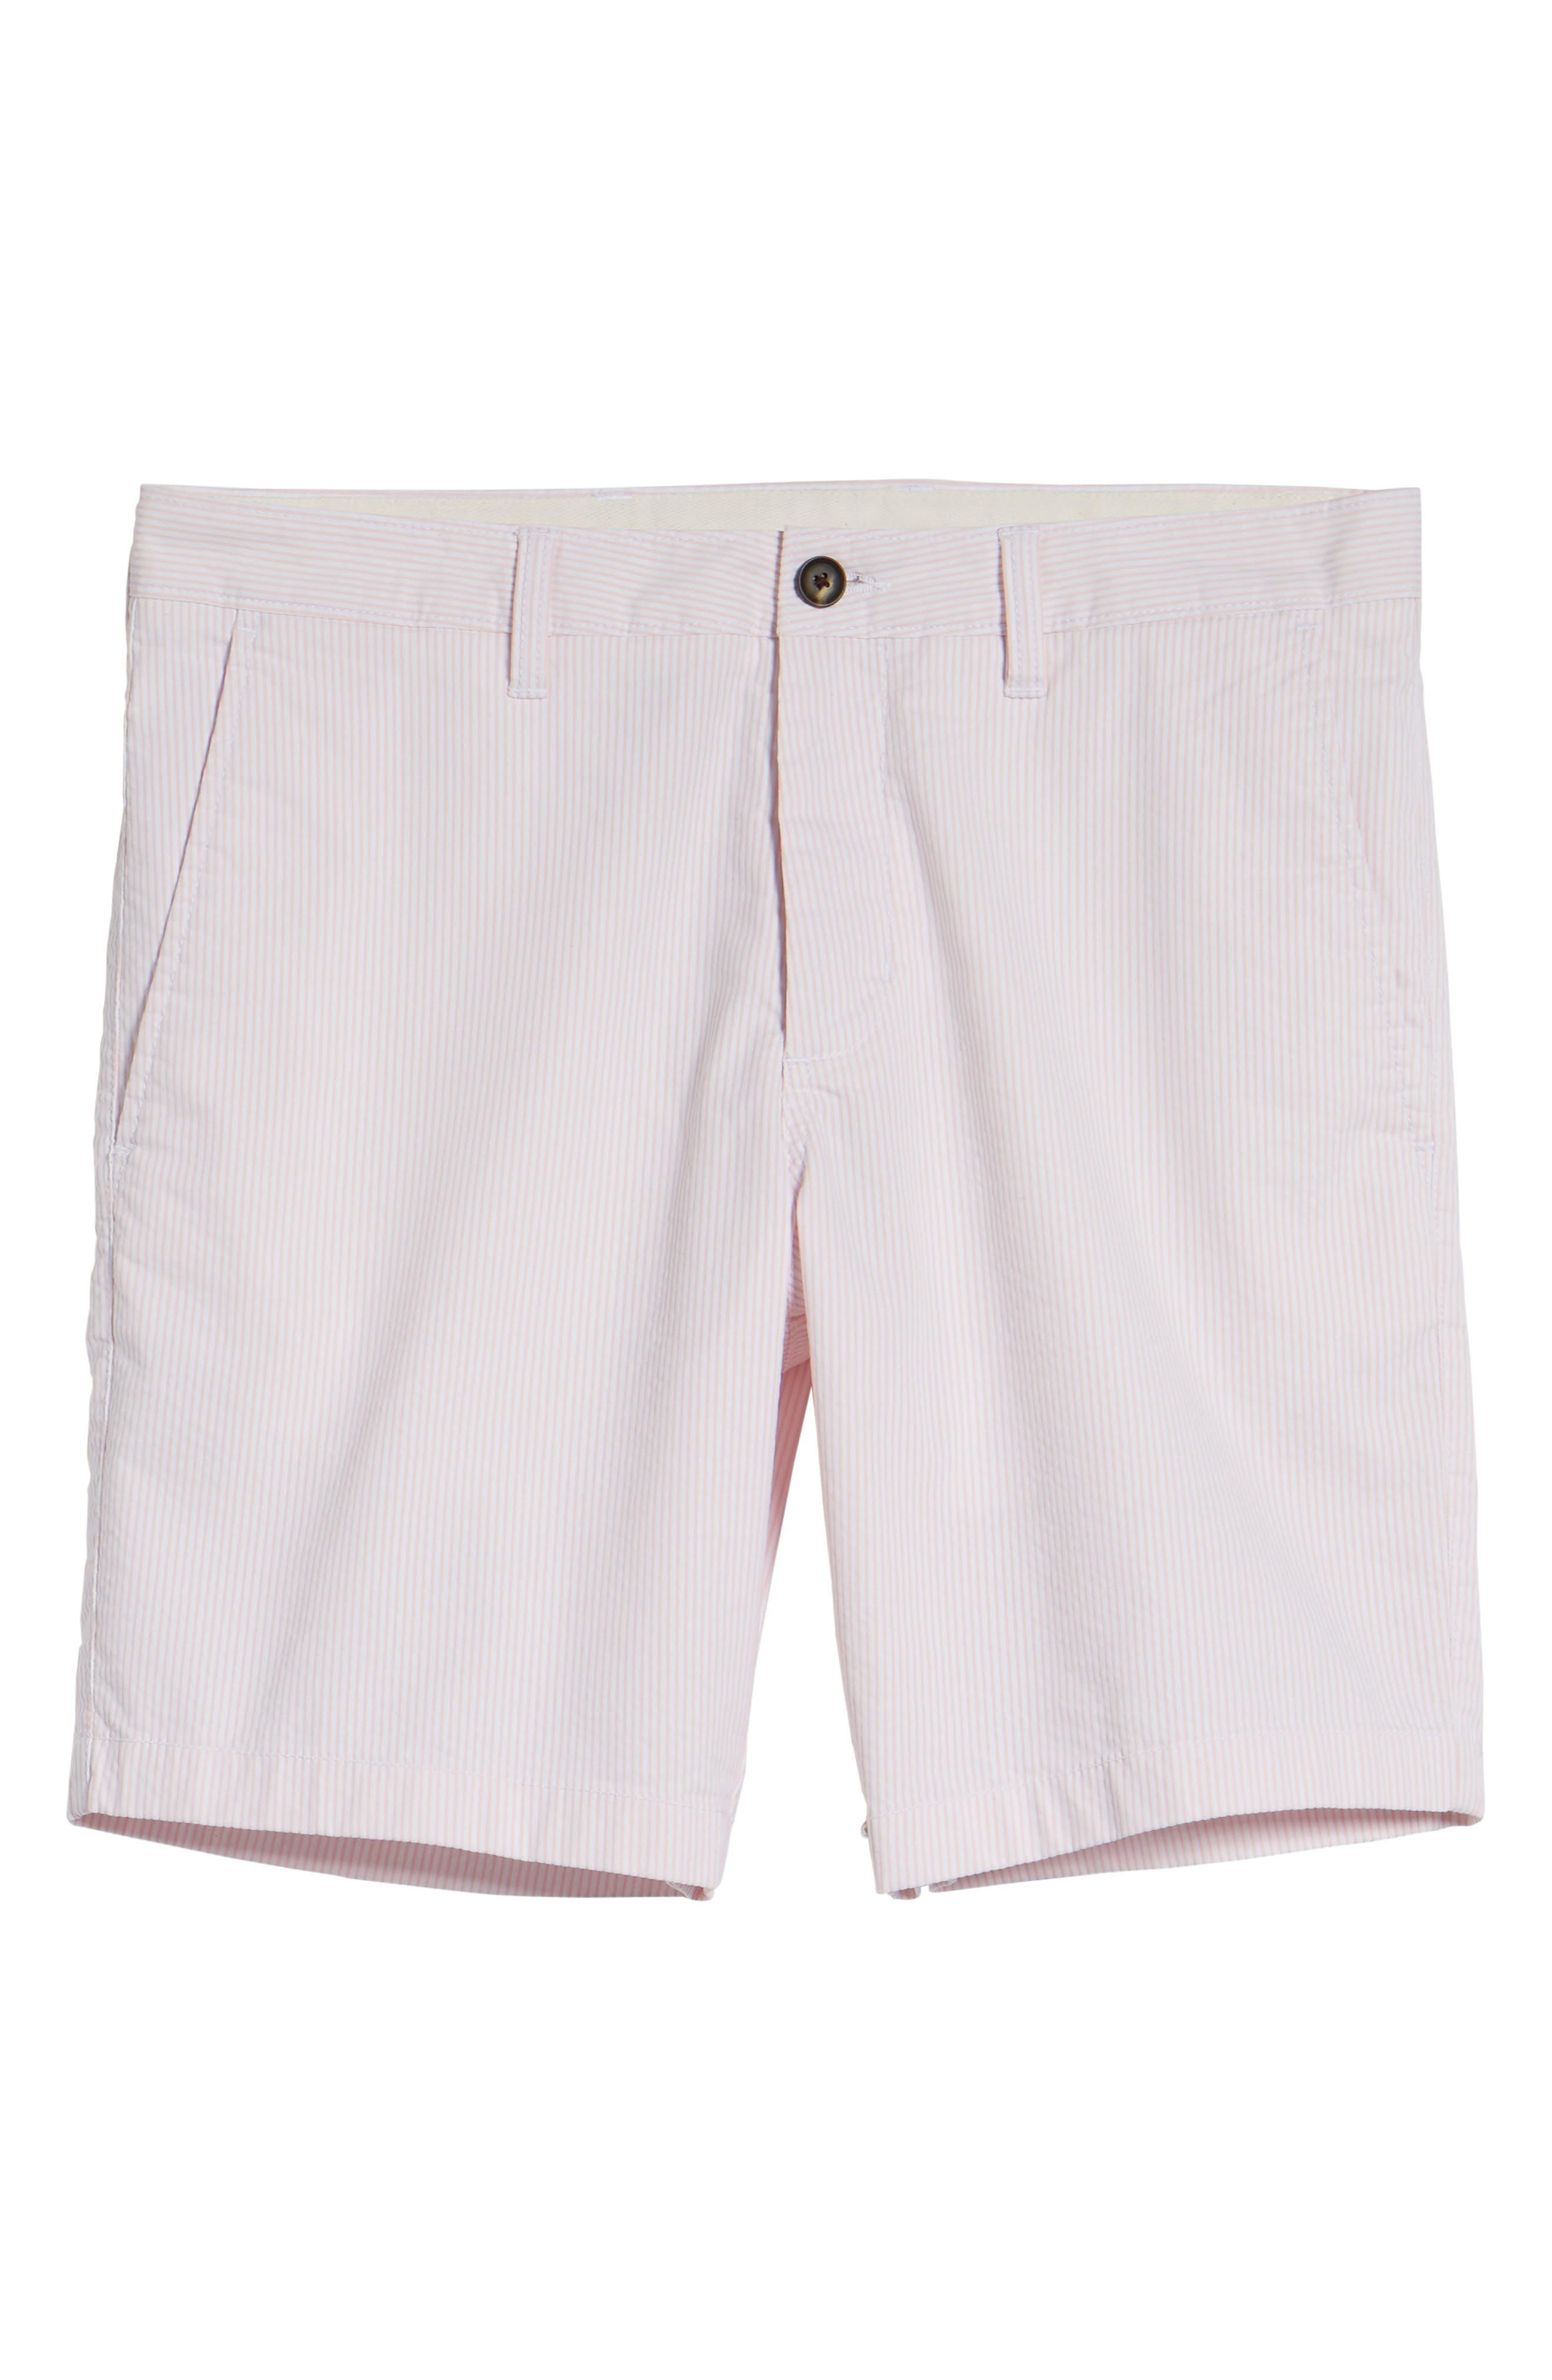 Ballard Slim Fit Seersucker Shorts,                             Alternate thumbnail 12, color,